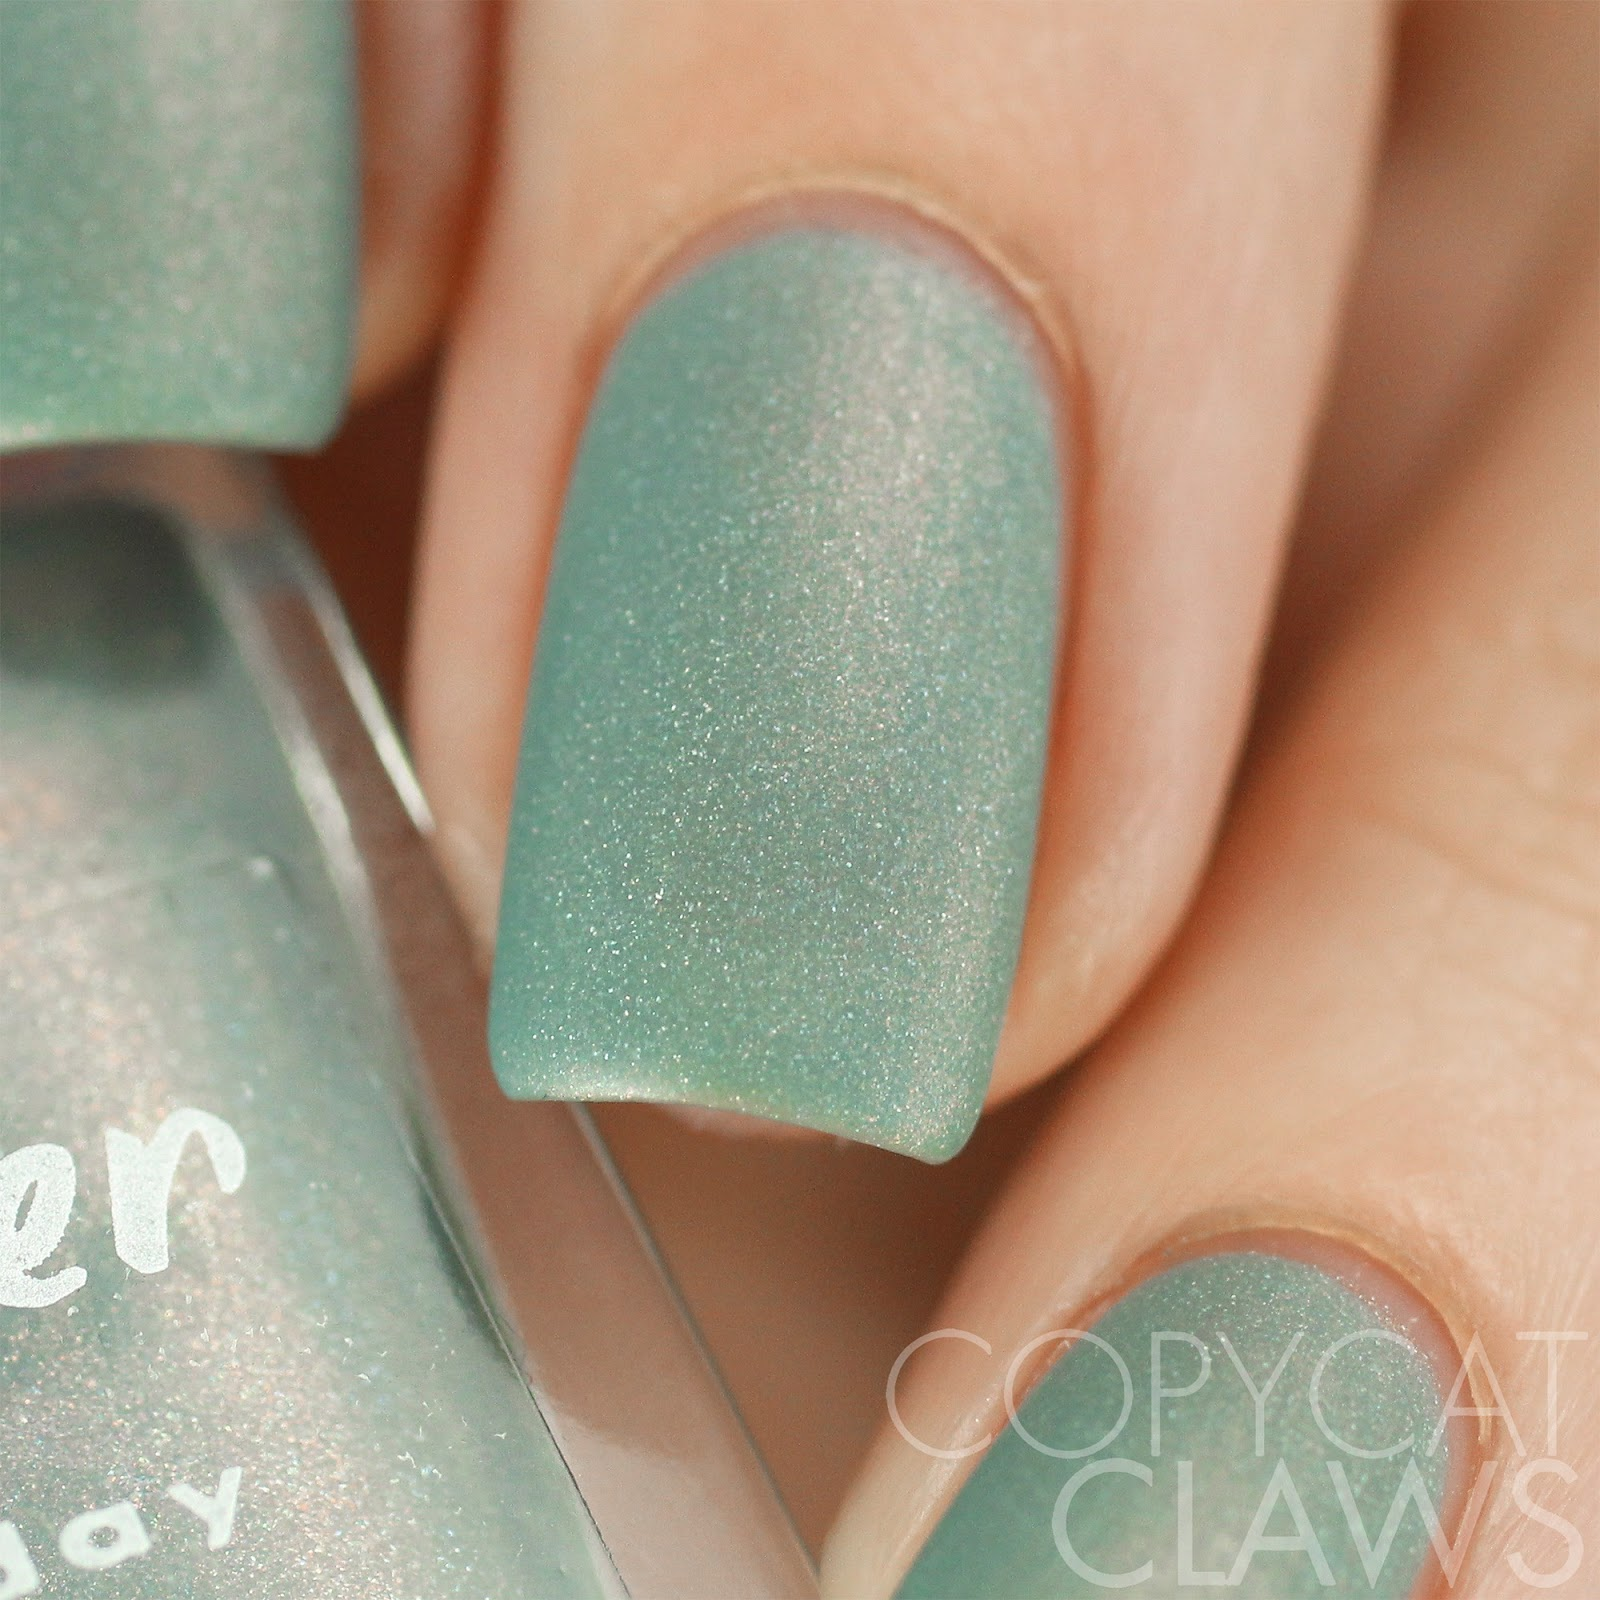 Copycat Claws: Lacquester Swatches